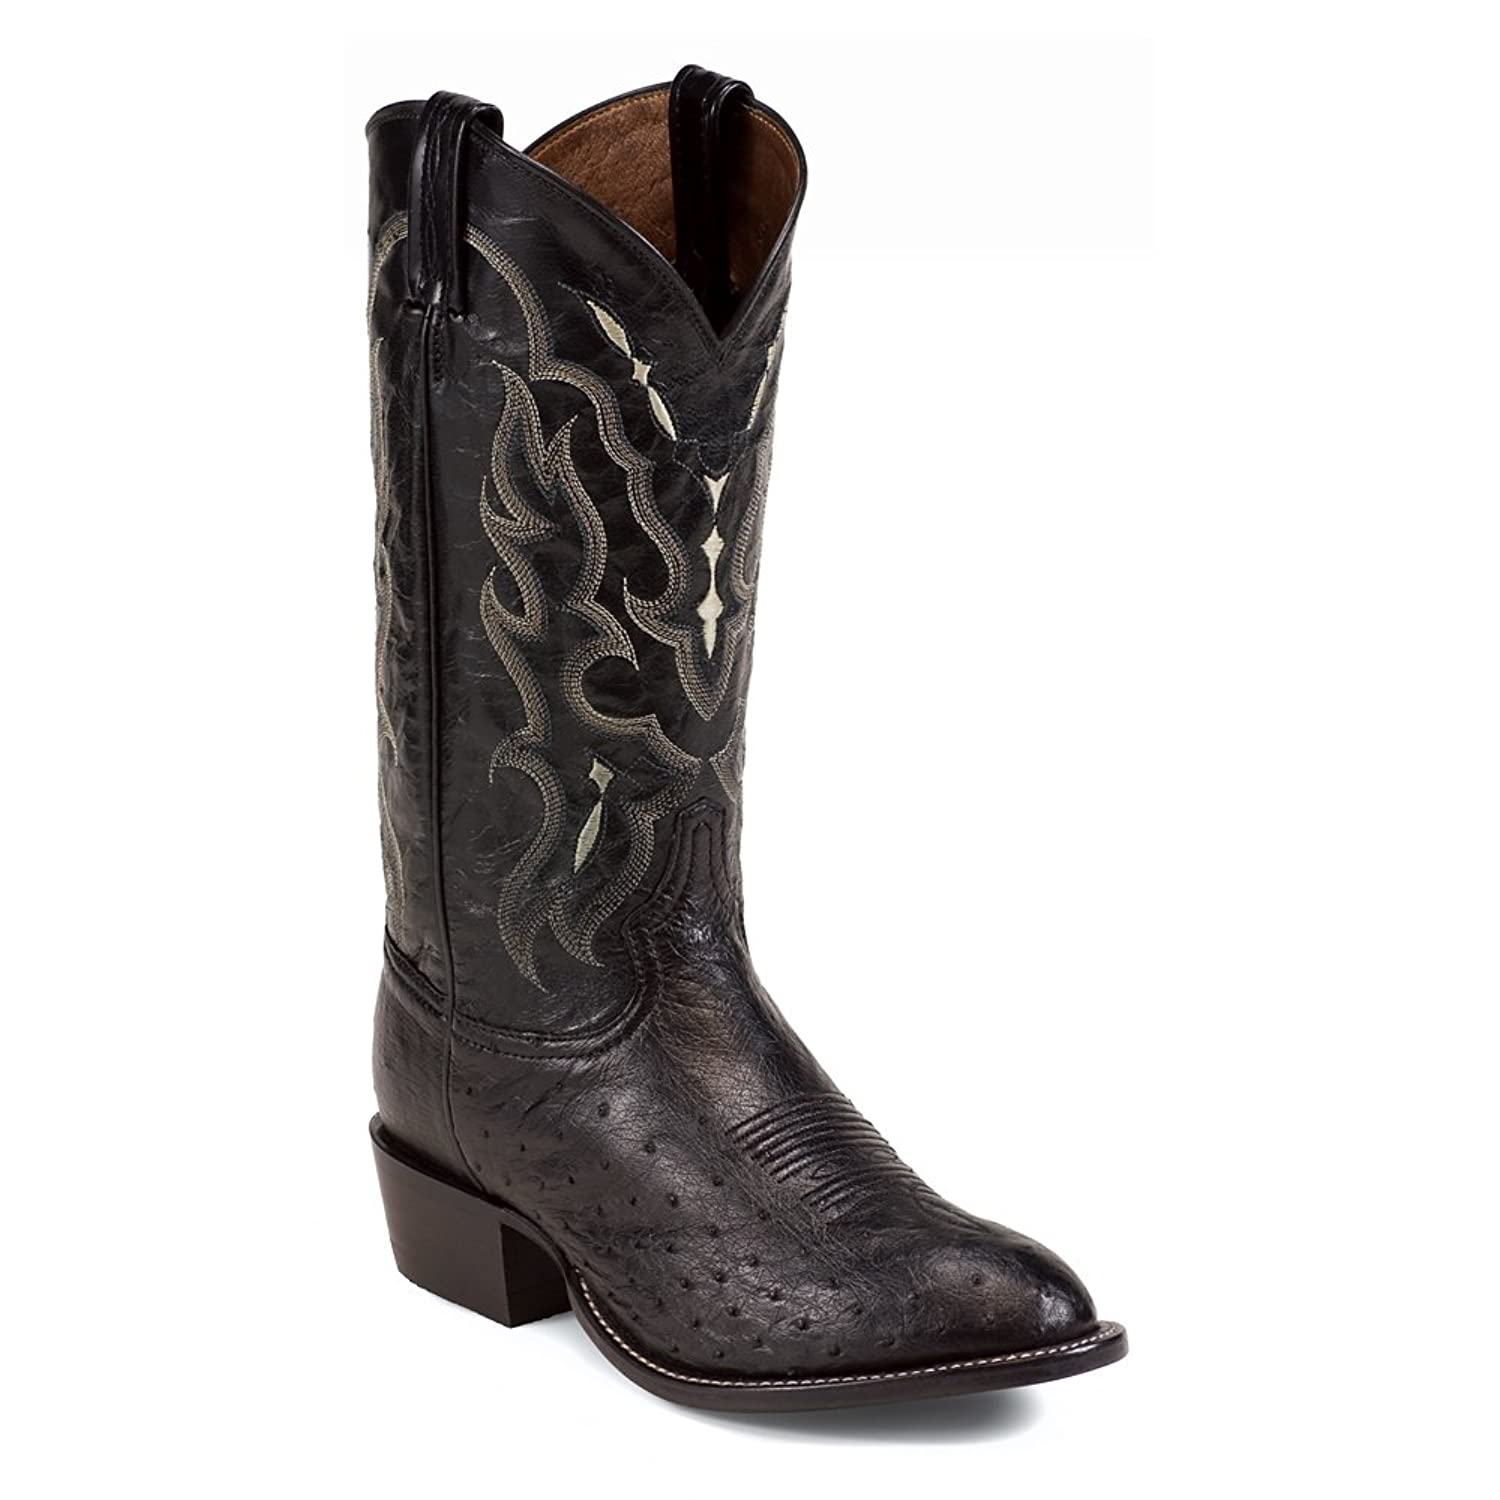 Tony Lama Men's Smooth Ostrich Western Boot Round Toe - Q1224_X